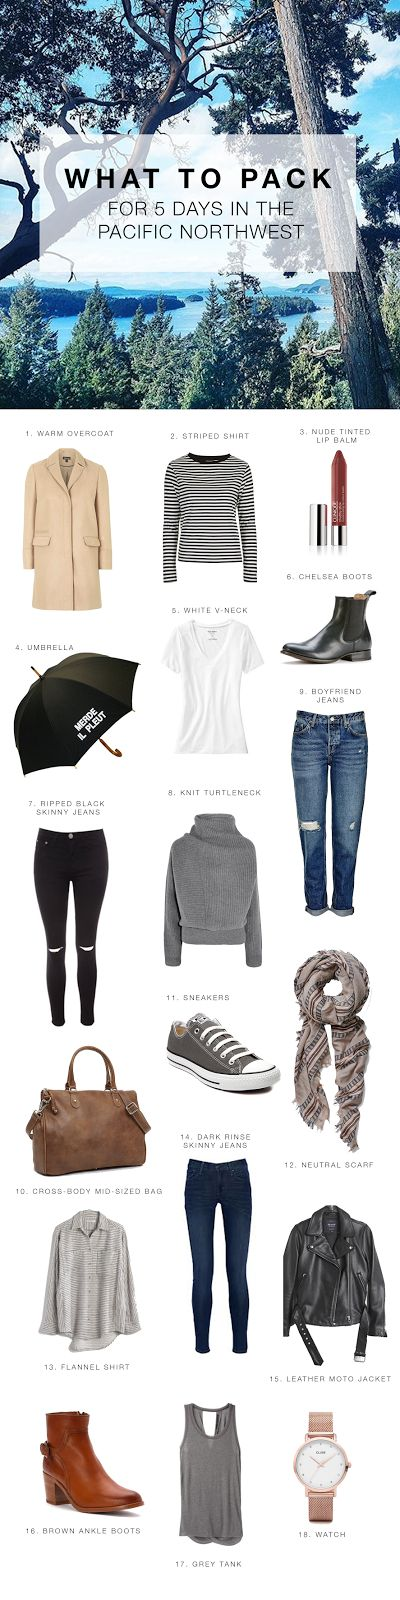 packing list for cooler/rainy weather